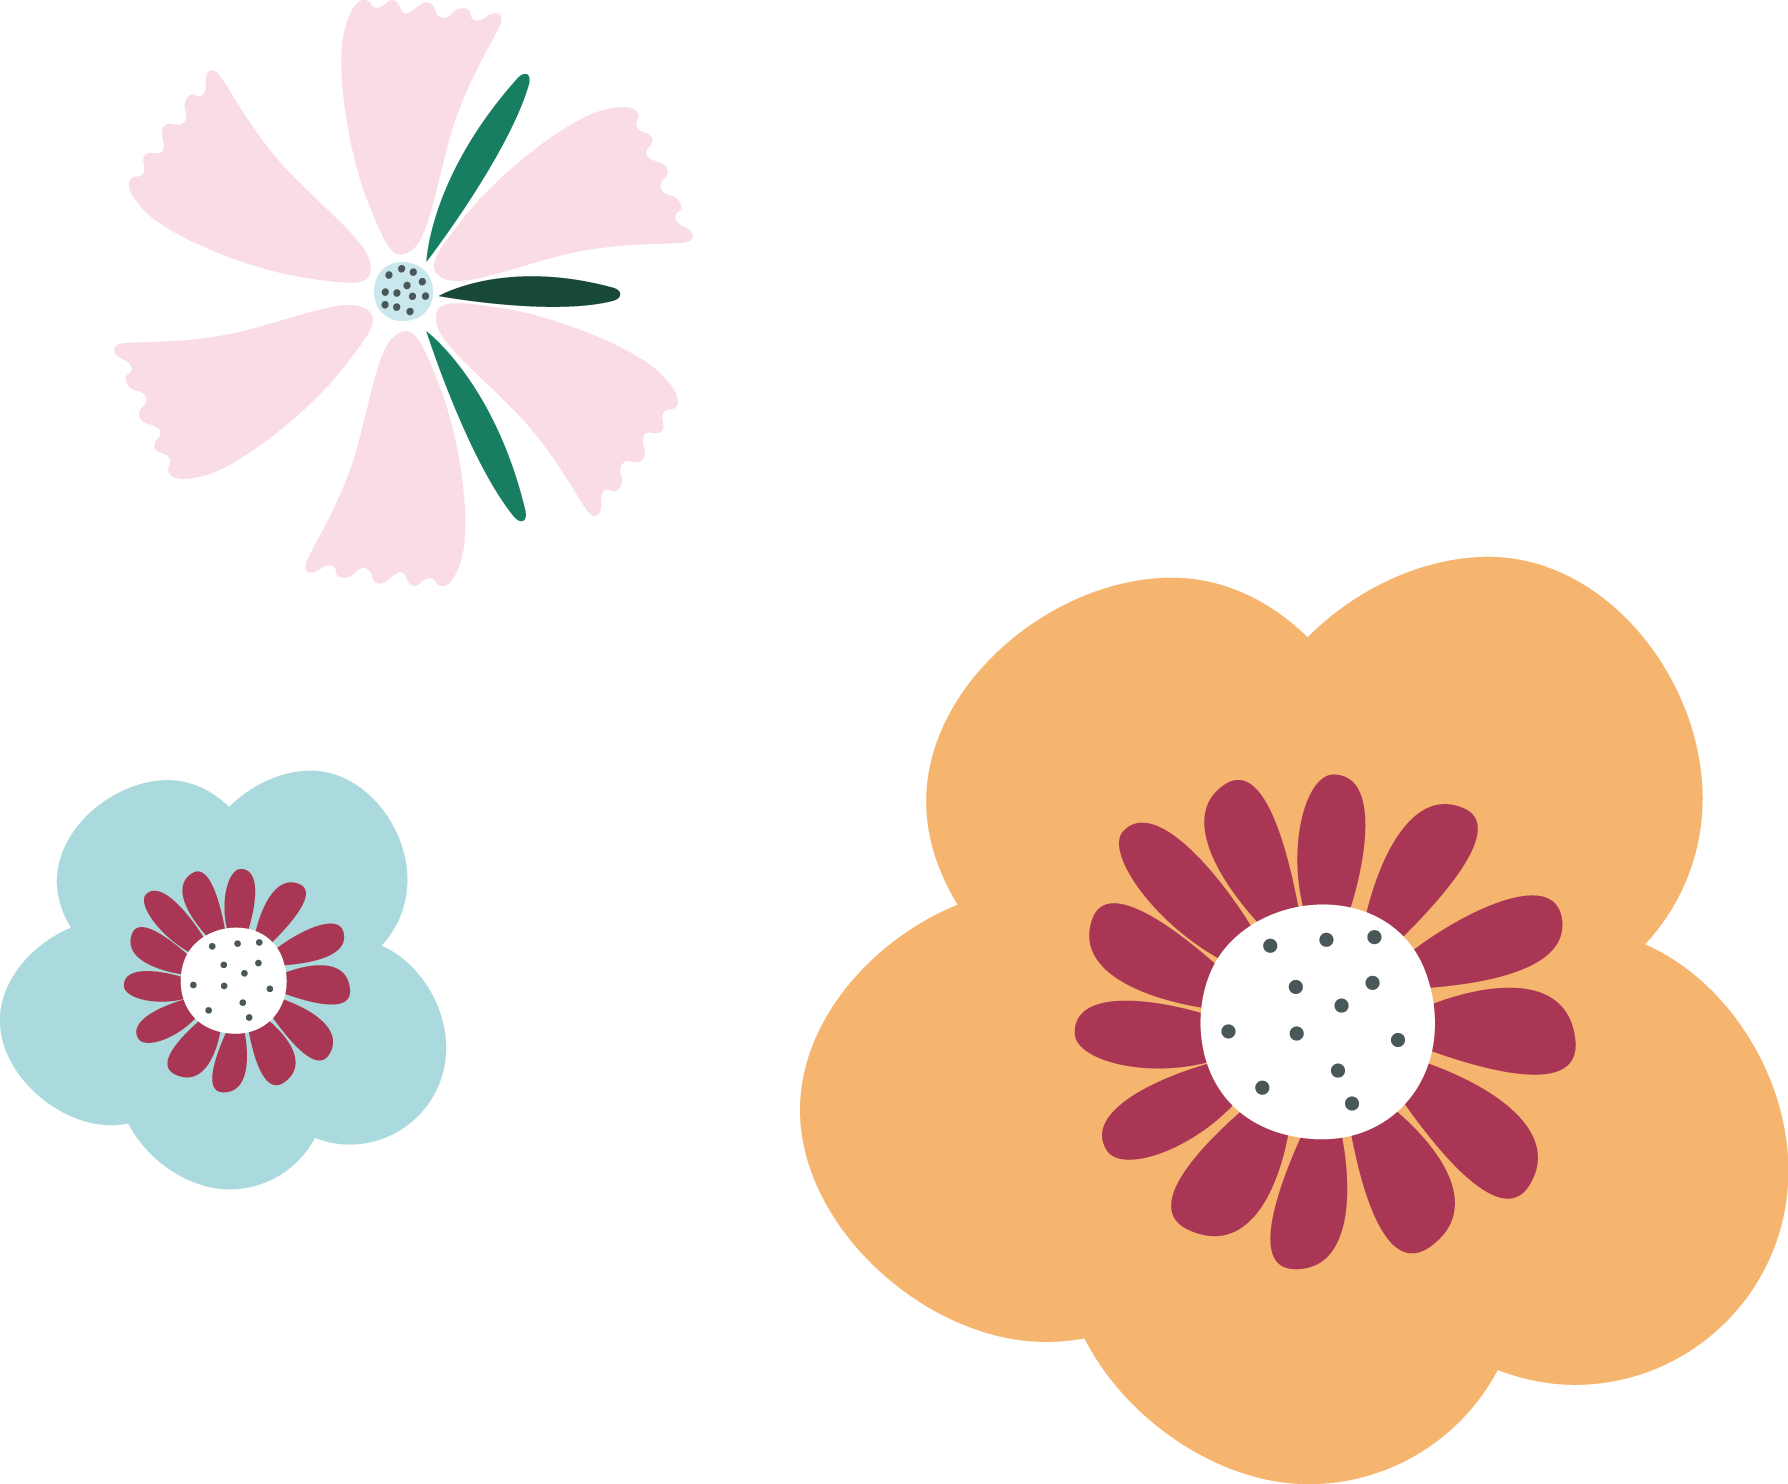 Daisy clipart wildflower. Floral design flower common